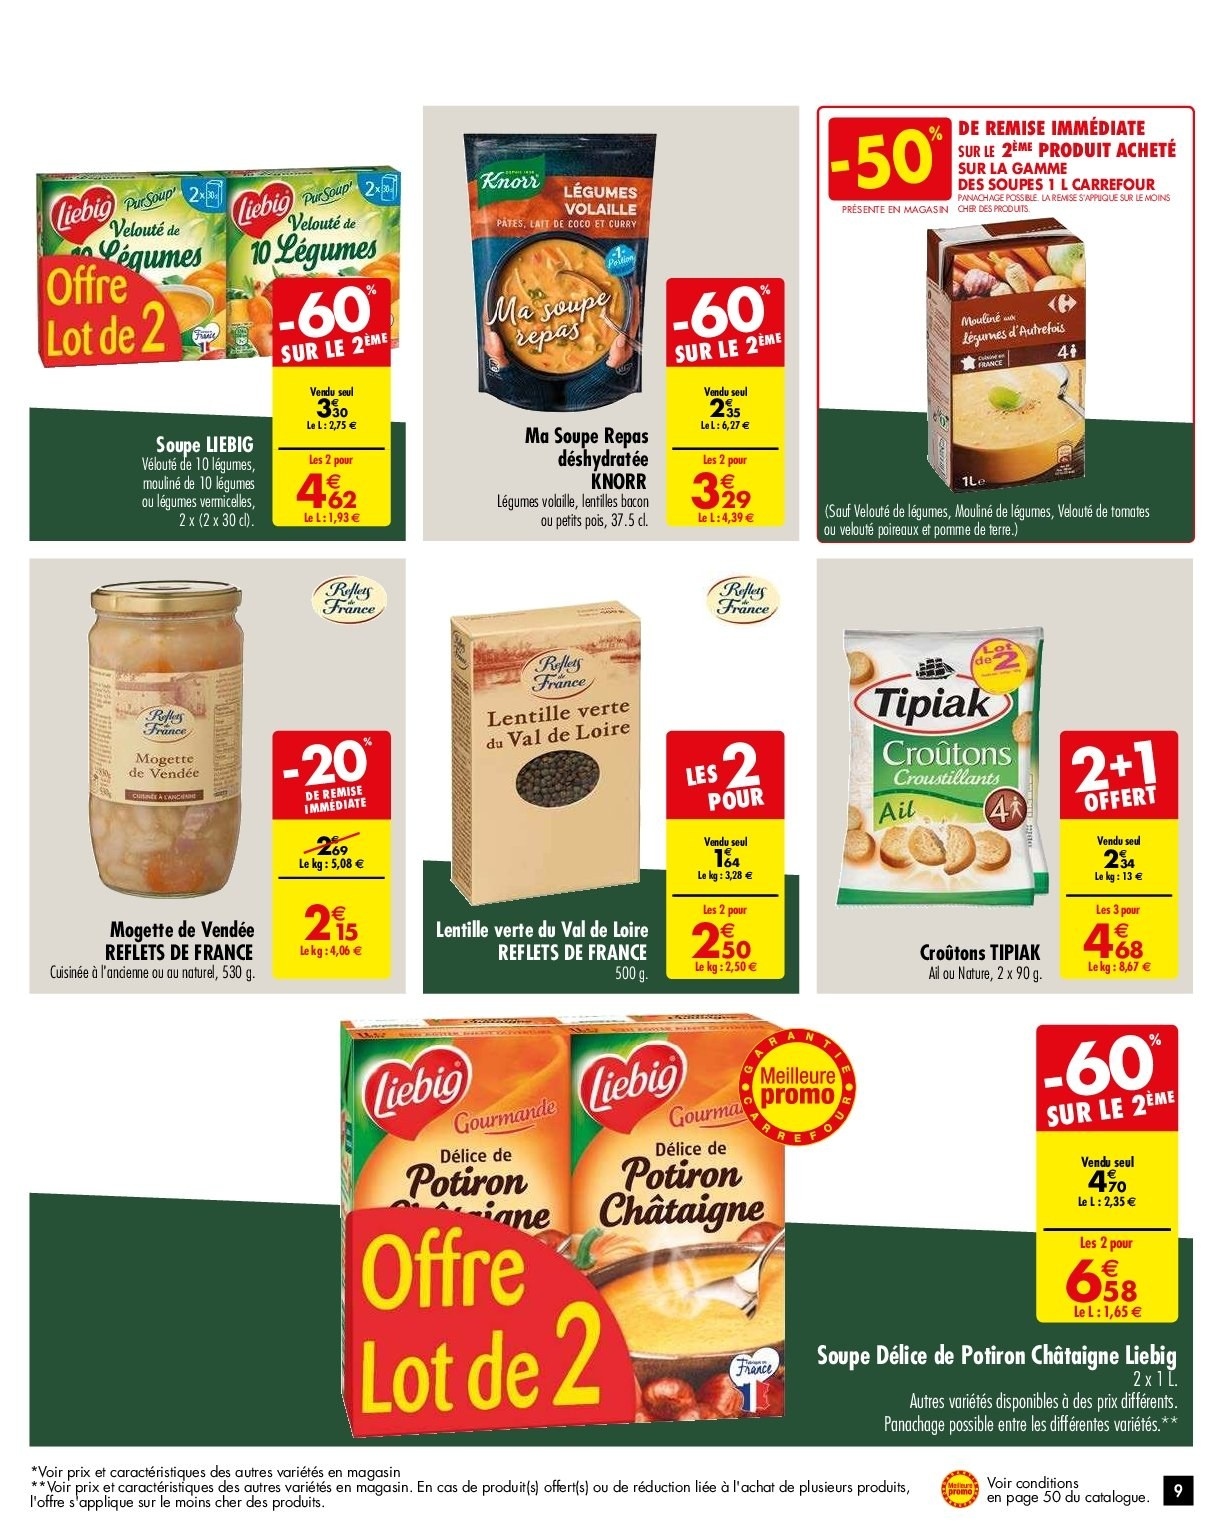 Catalogue Carrefour - 05.02.2019 - 11.02.2019. Page 9.